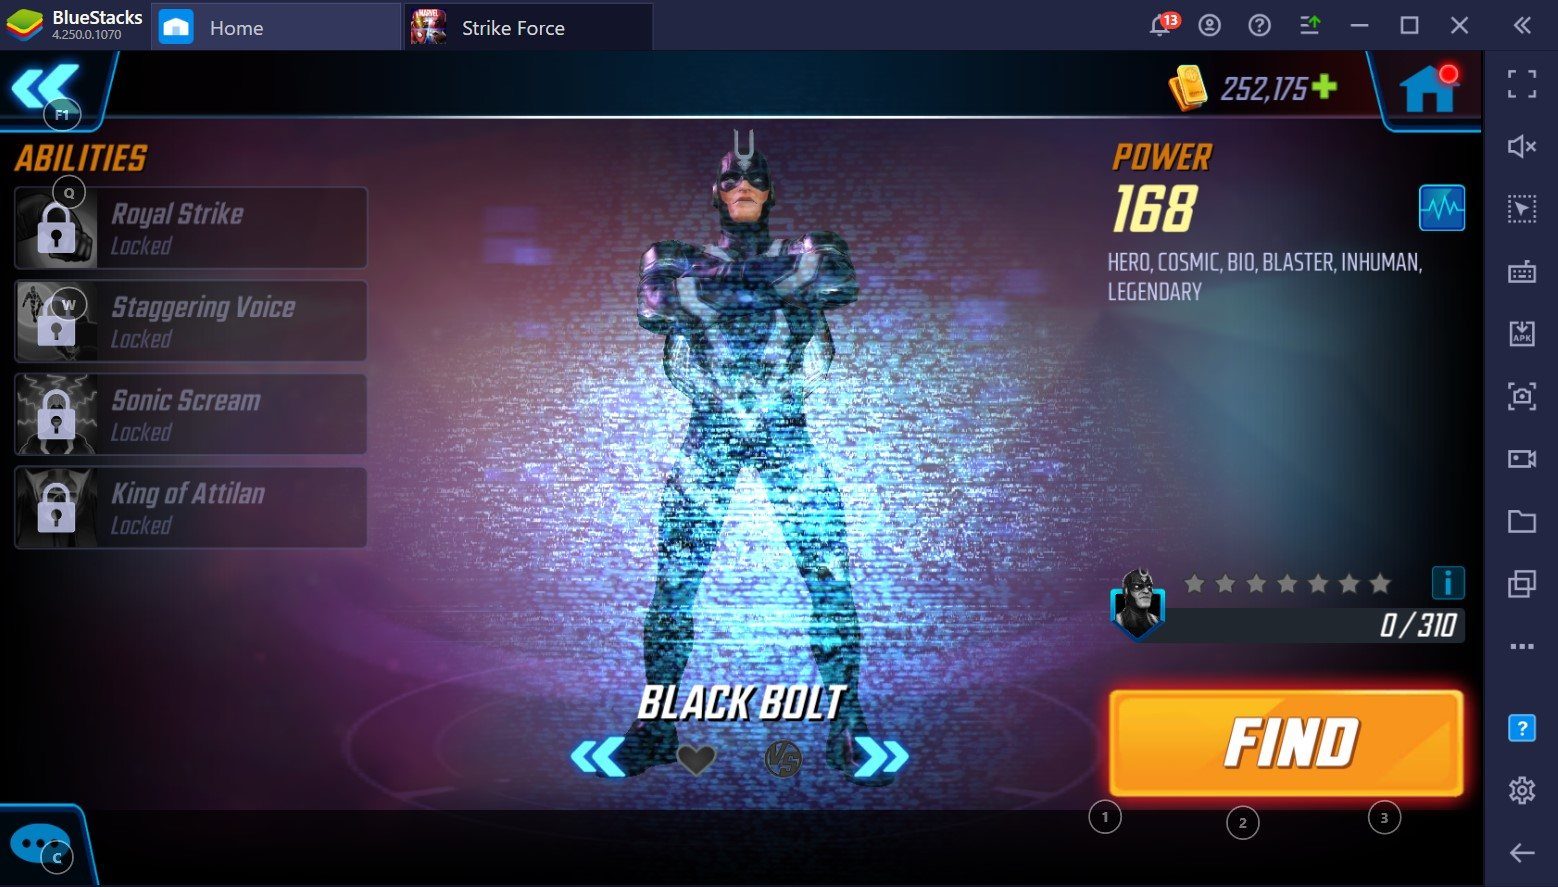 Black Bolt: The Most Powerful Character in MARVEL Strike Force?